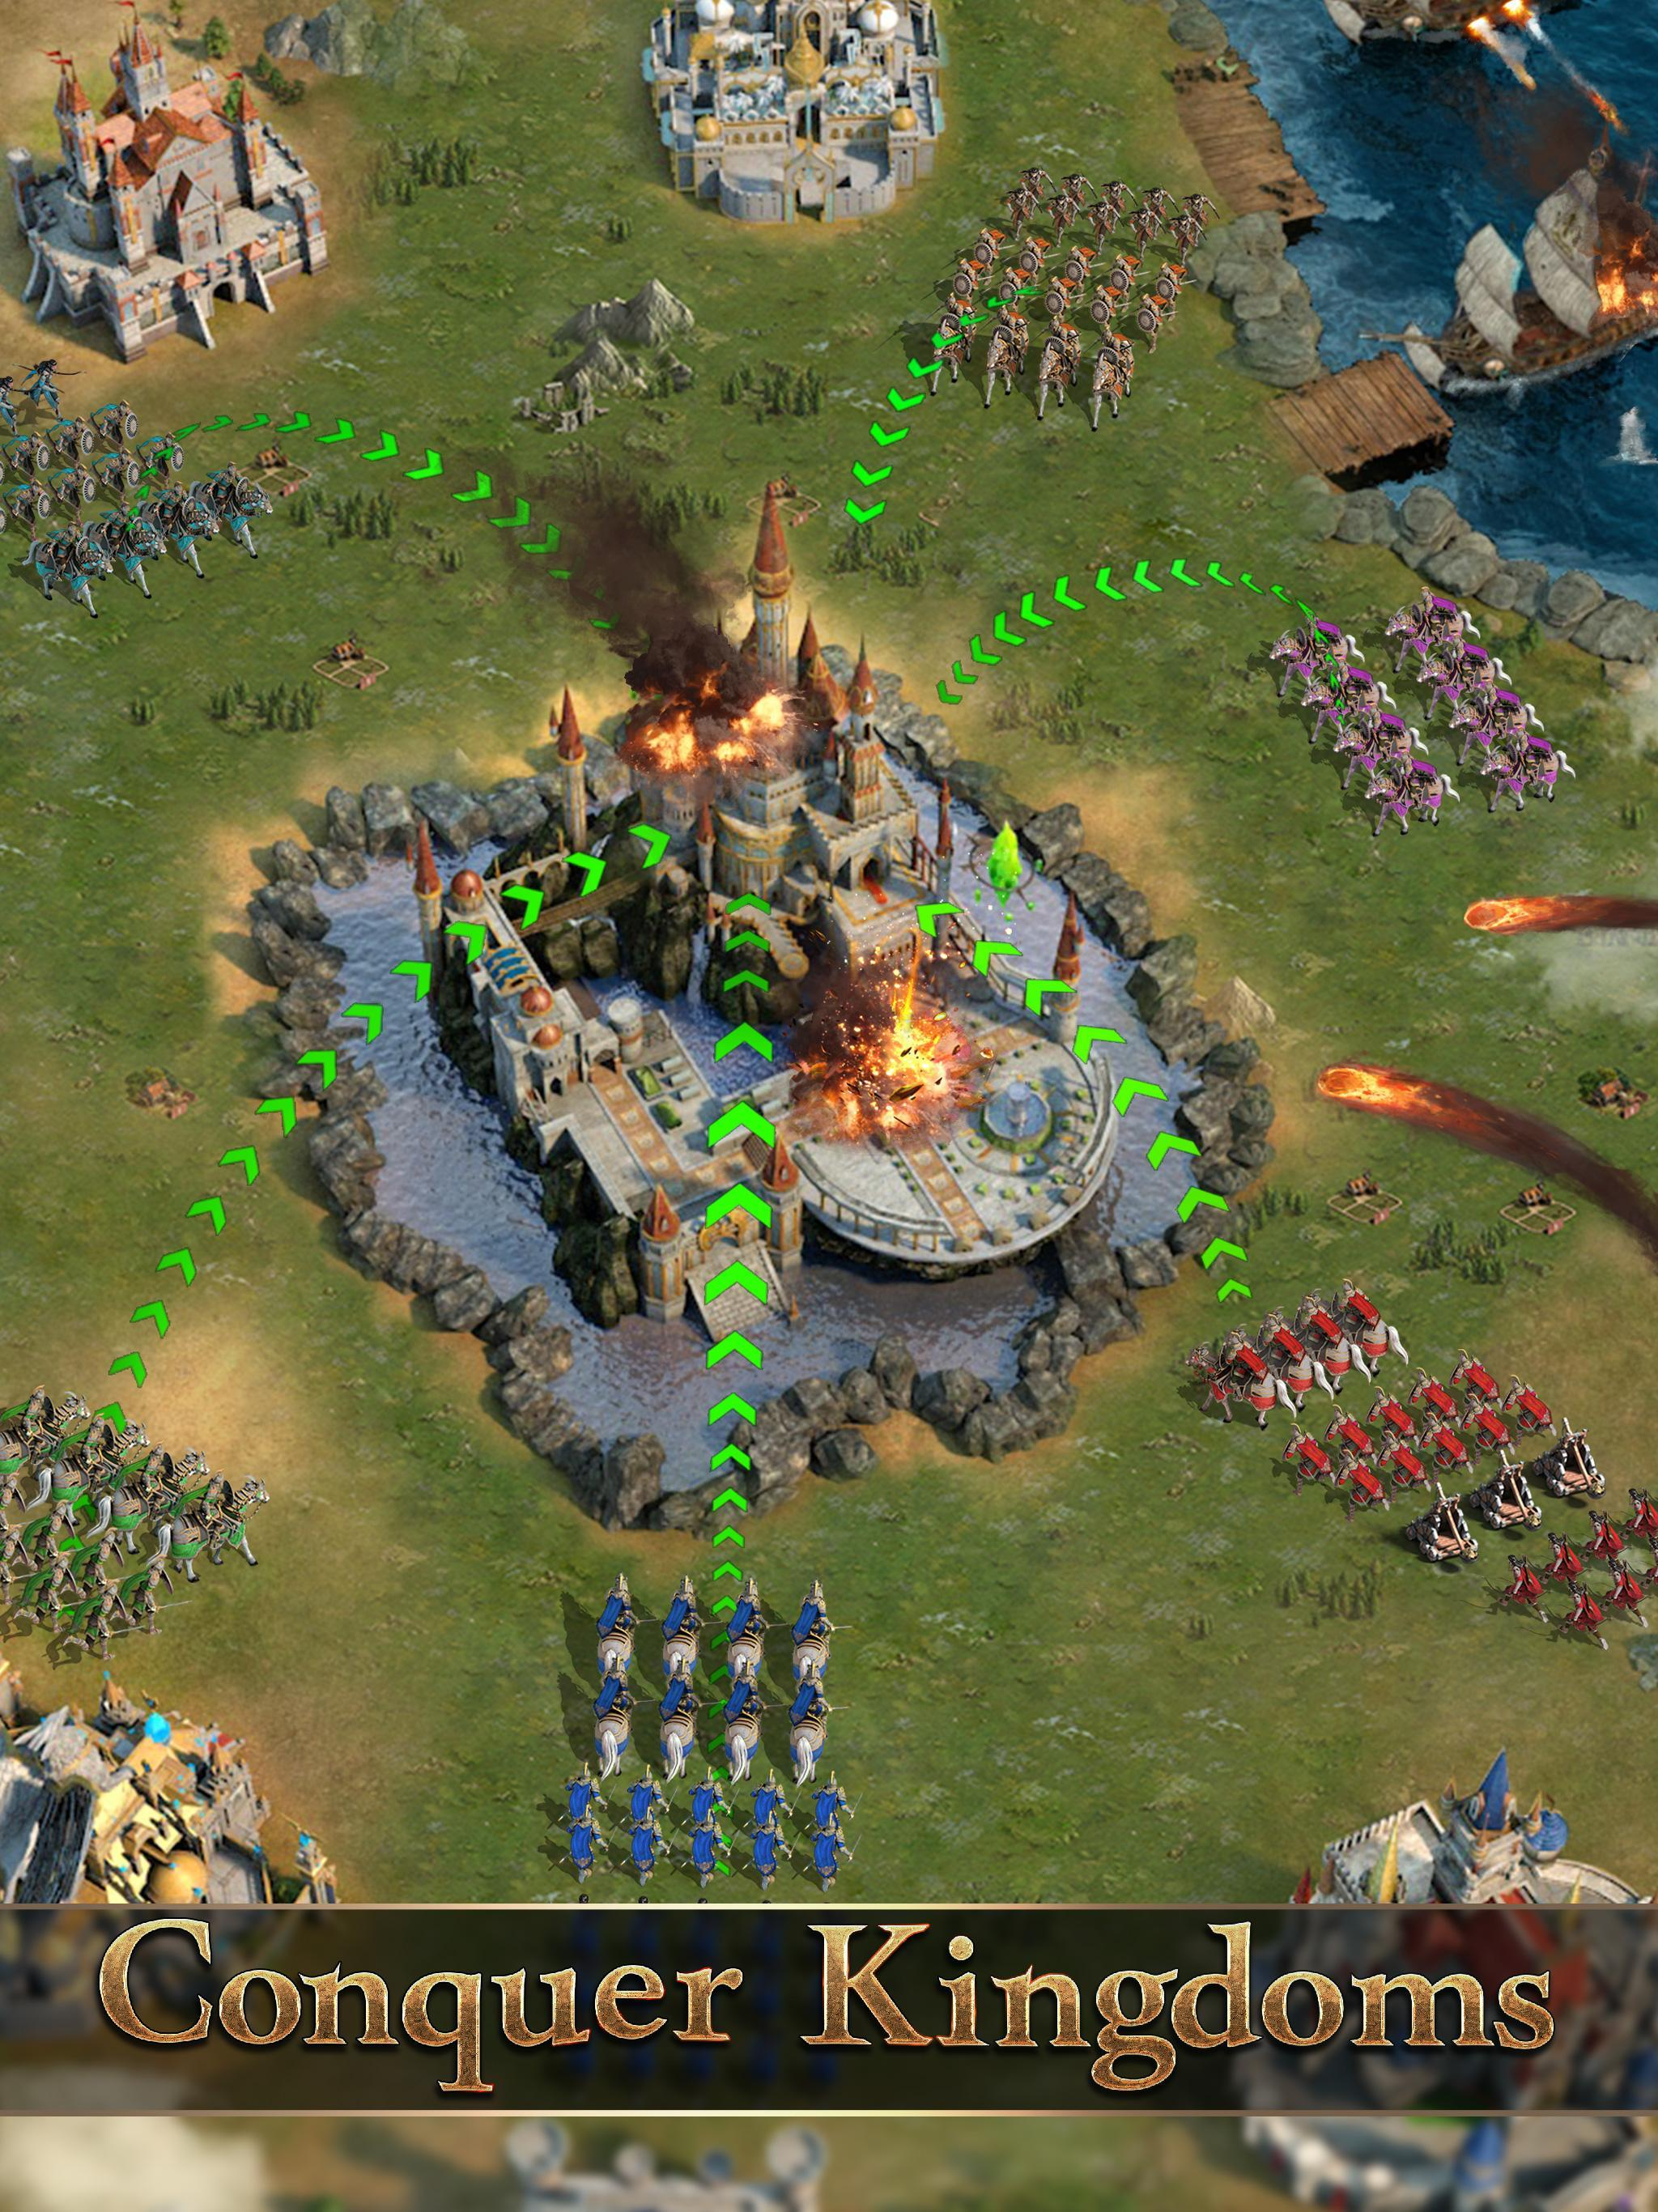 Rise of the Kings for Android - APK Download